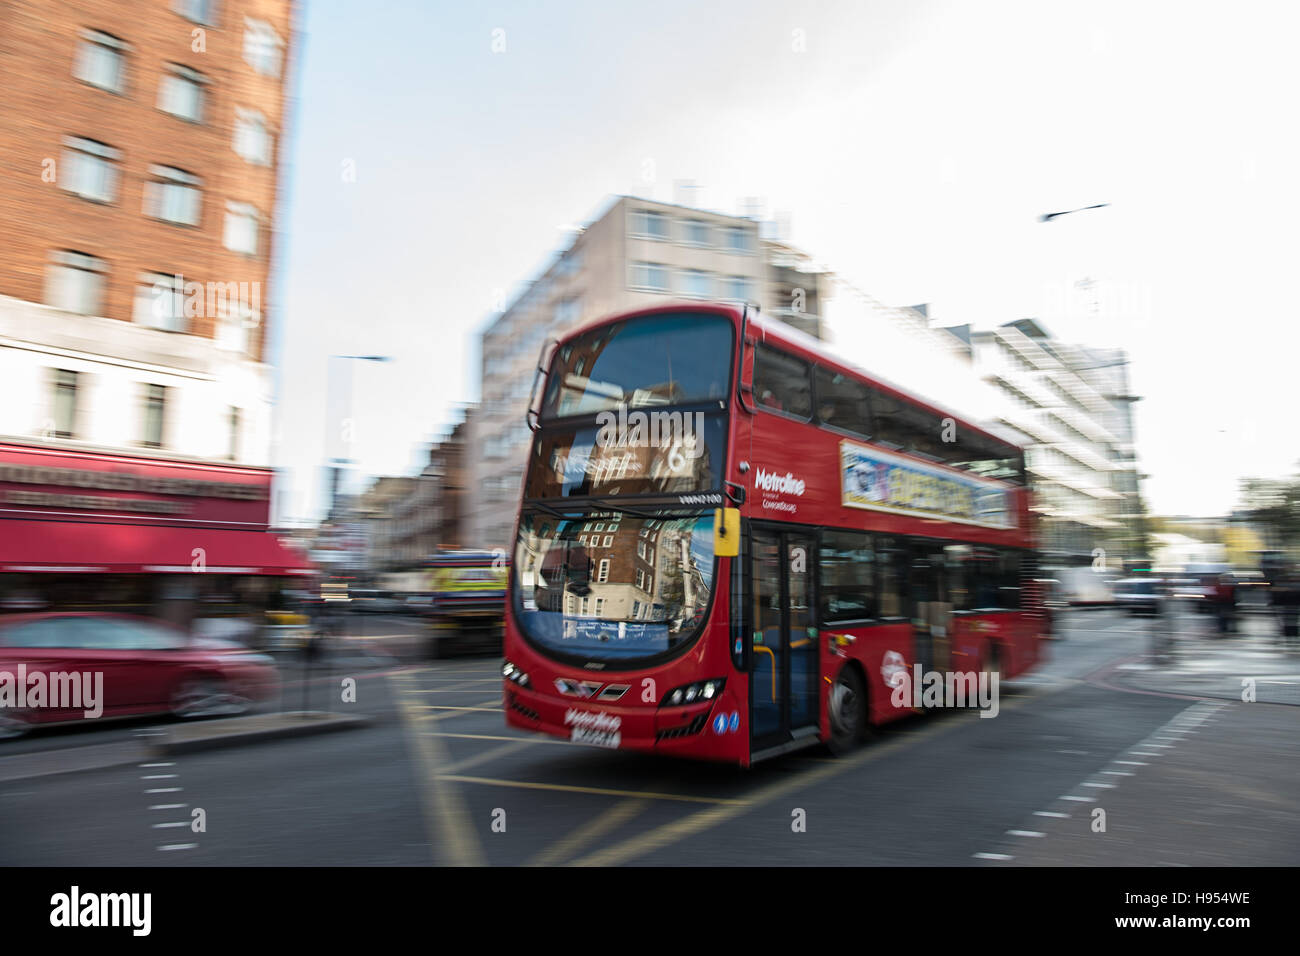 London, UK. 11th Nov, 2016. A bus travelling down a street in London, England, 11 November 2016. Photo: Wolfram Stock Photo